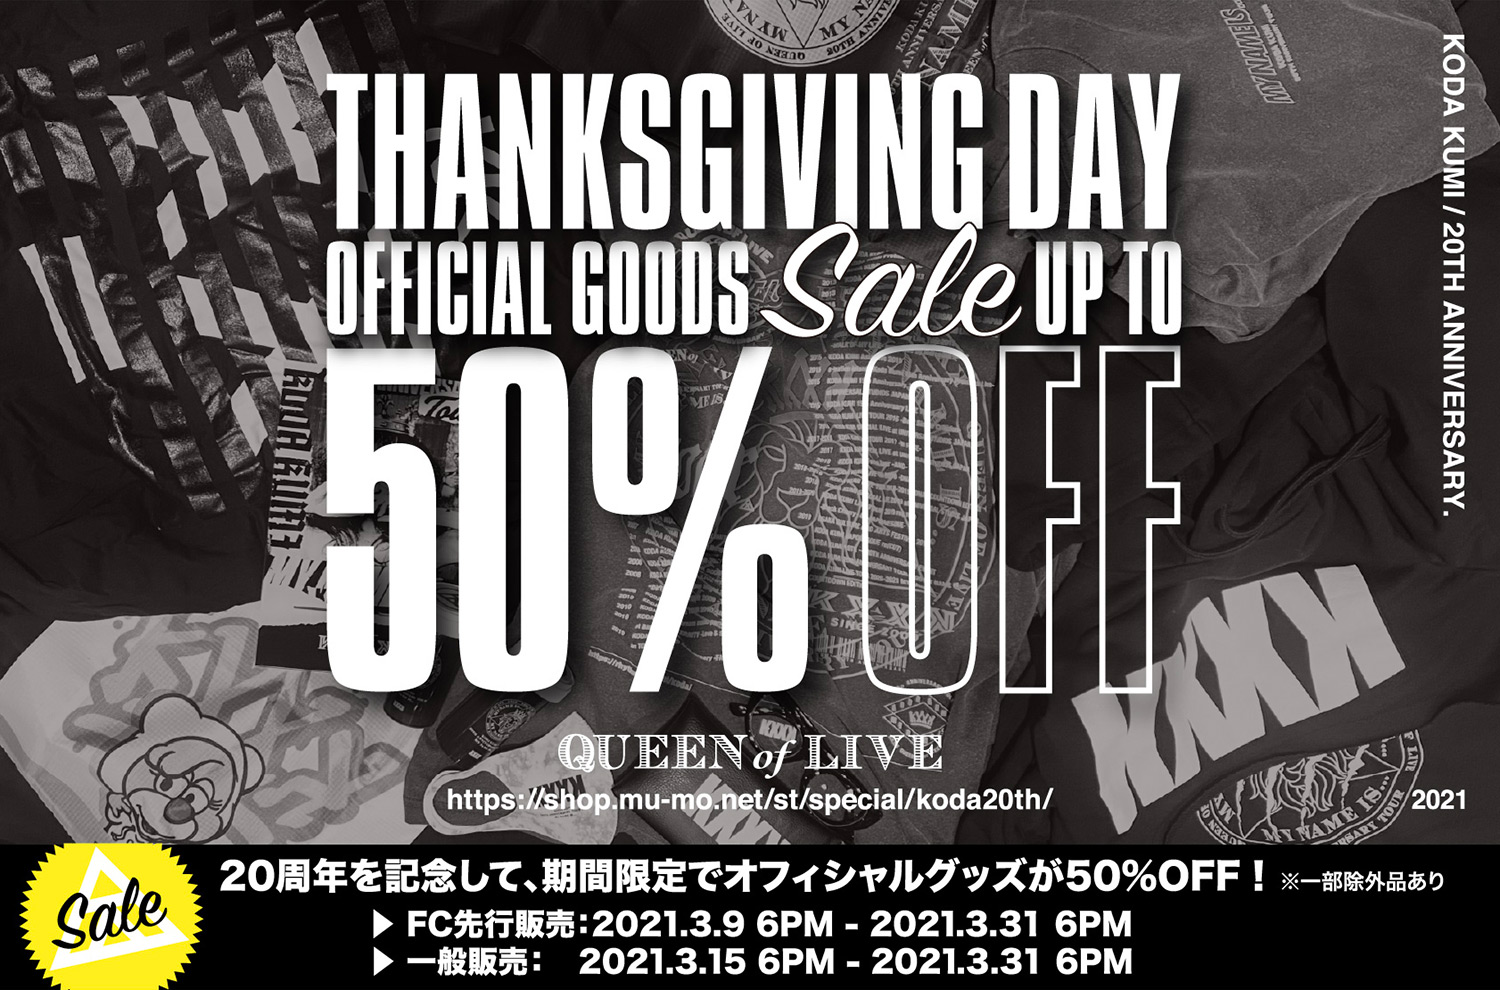 THANKSGIVING DAY OFFICIAL GOODS SALE UP TP 50% OFF